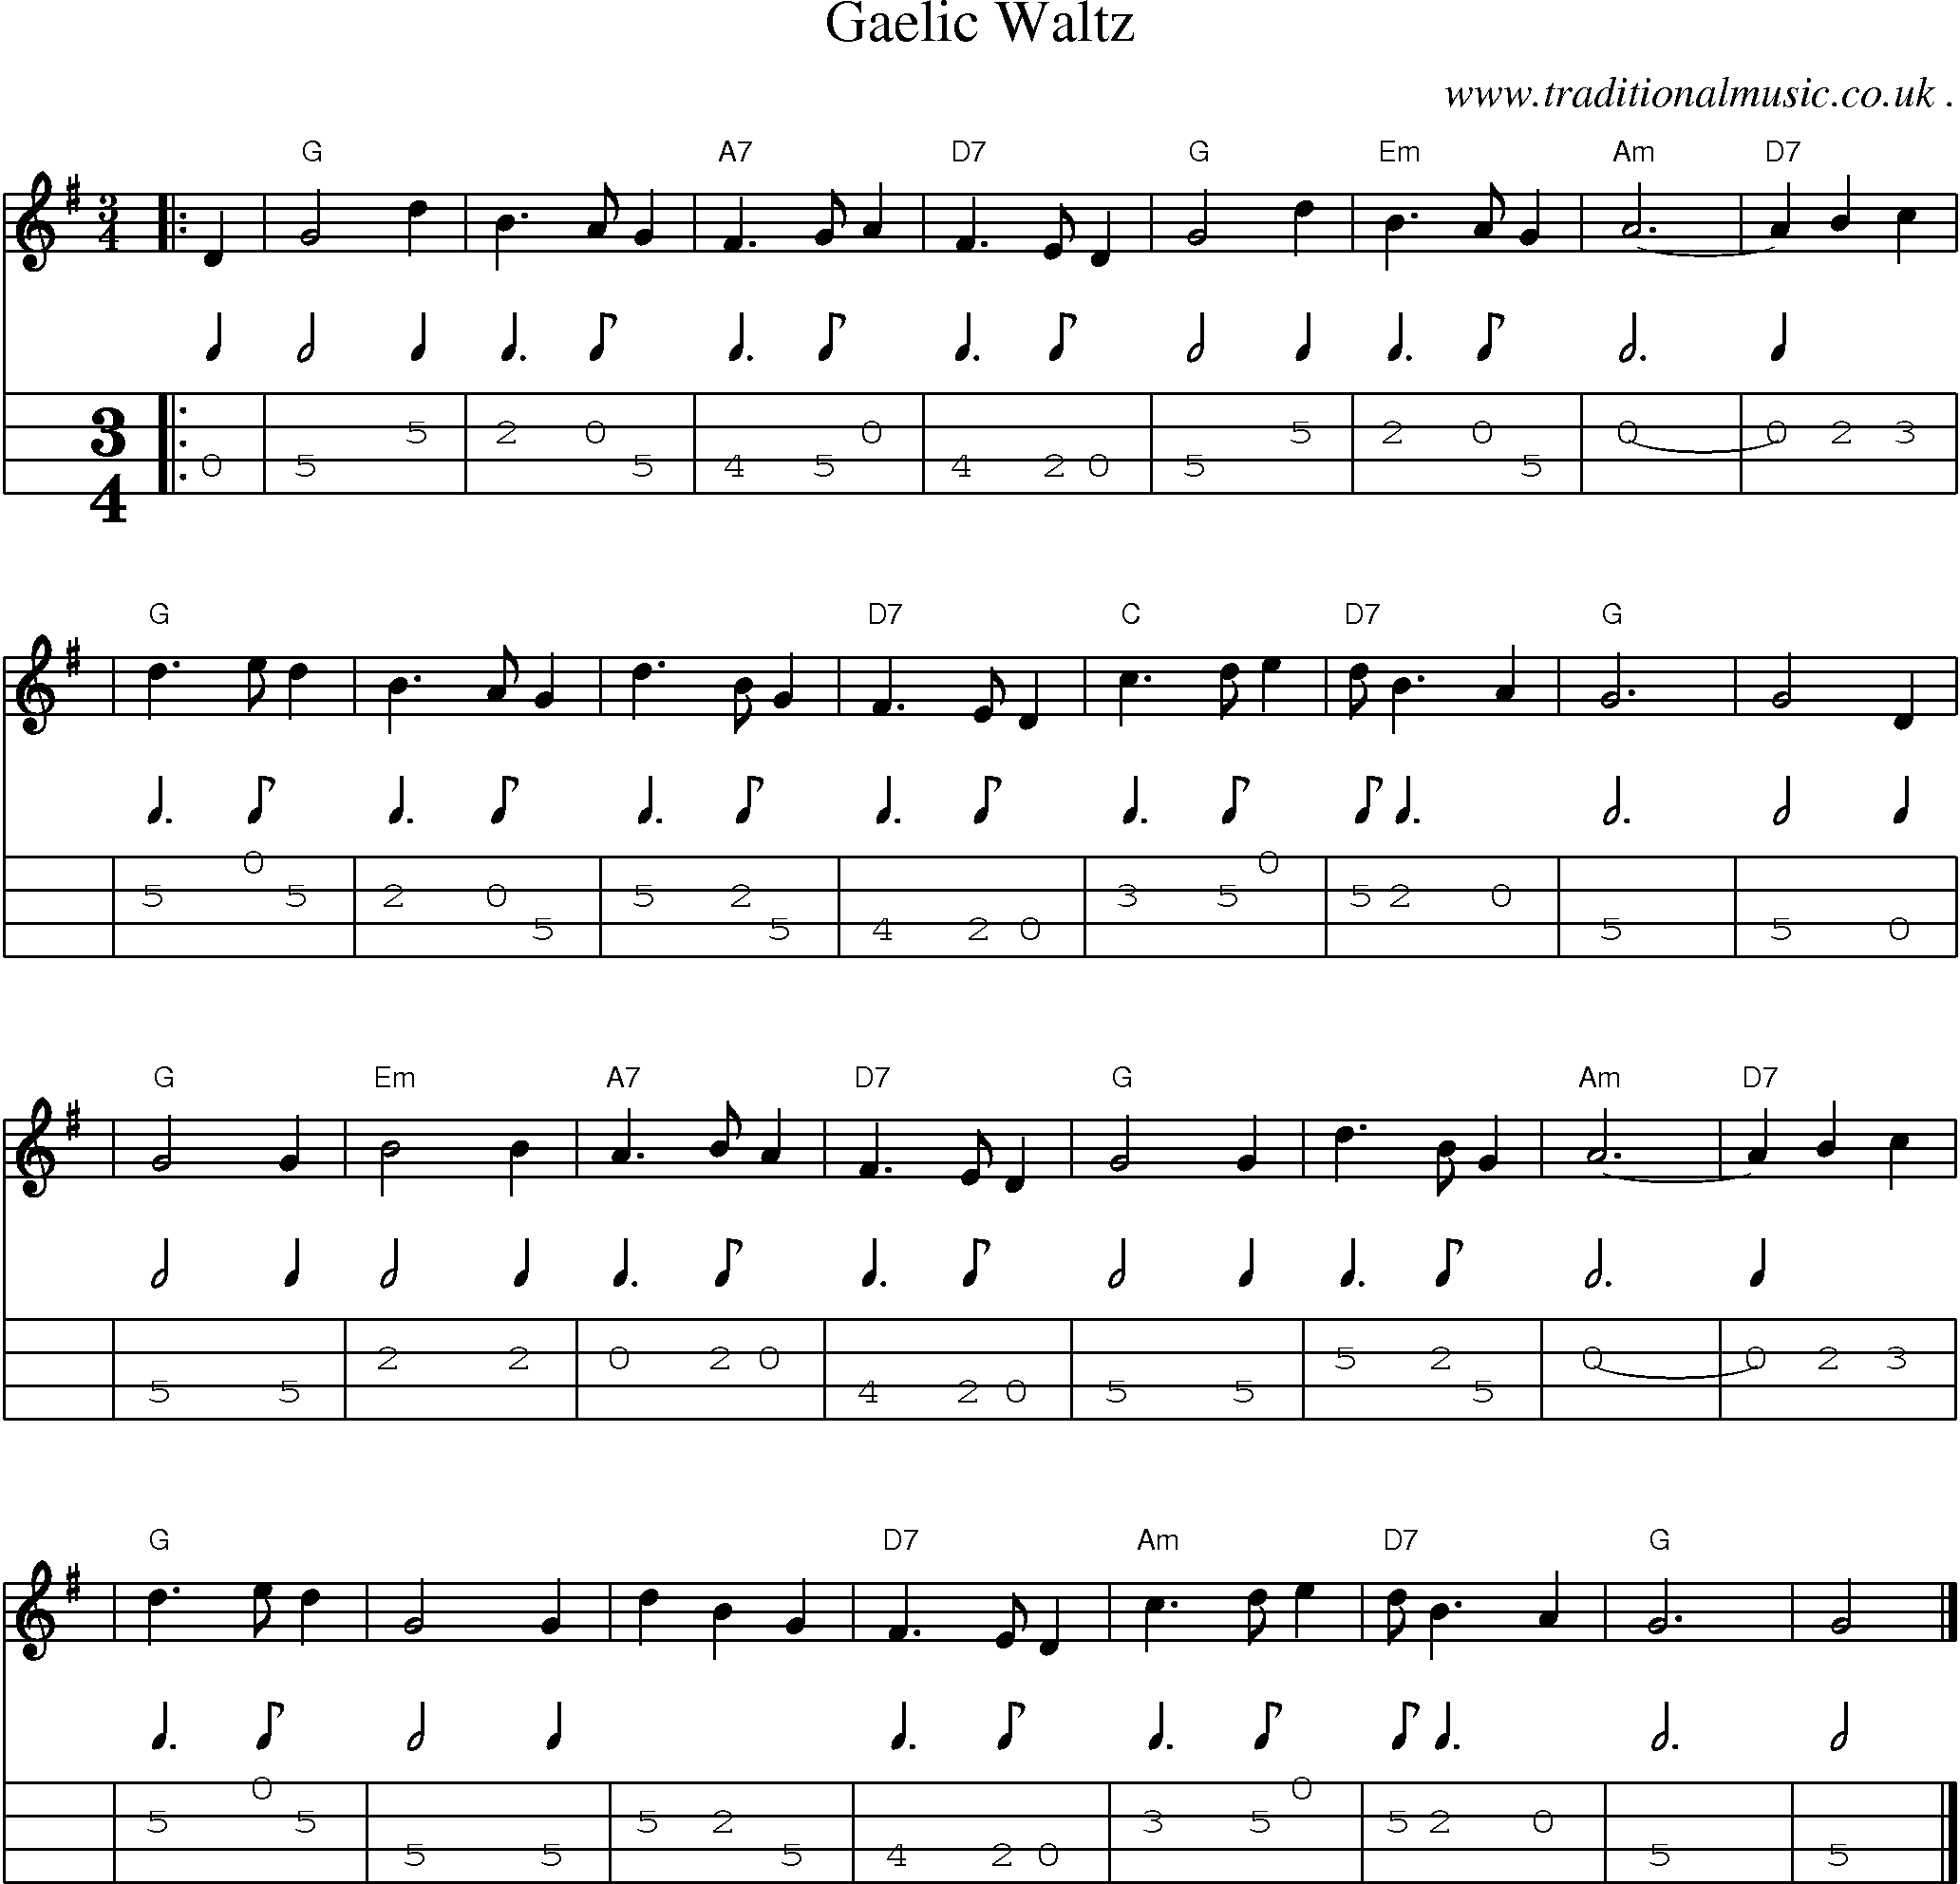 Sheet-music score, Chords and Mandolin Tabs for Gaelic Waltz